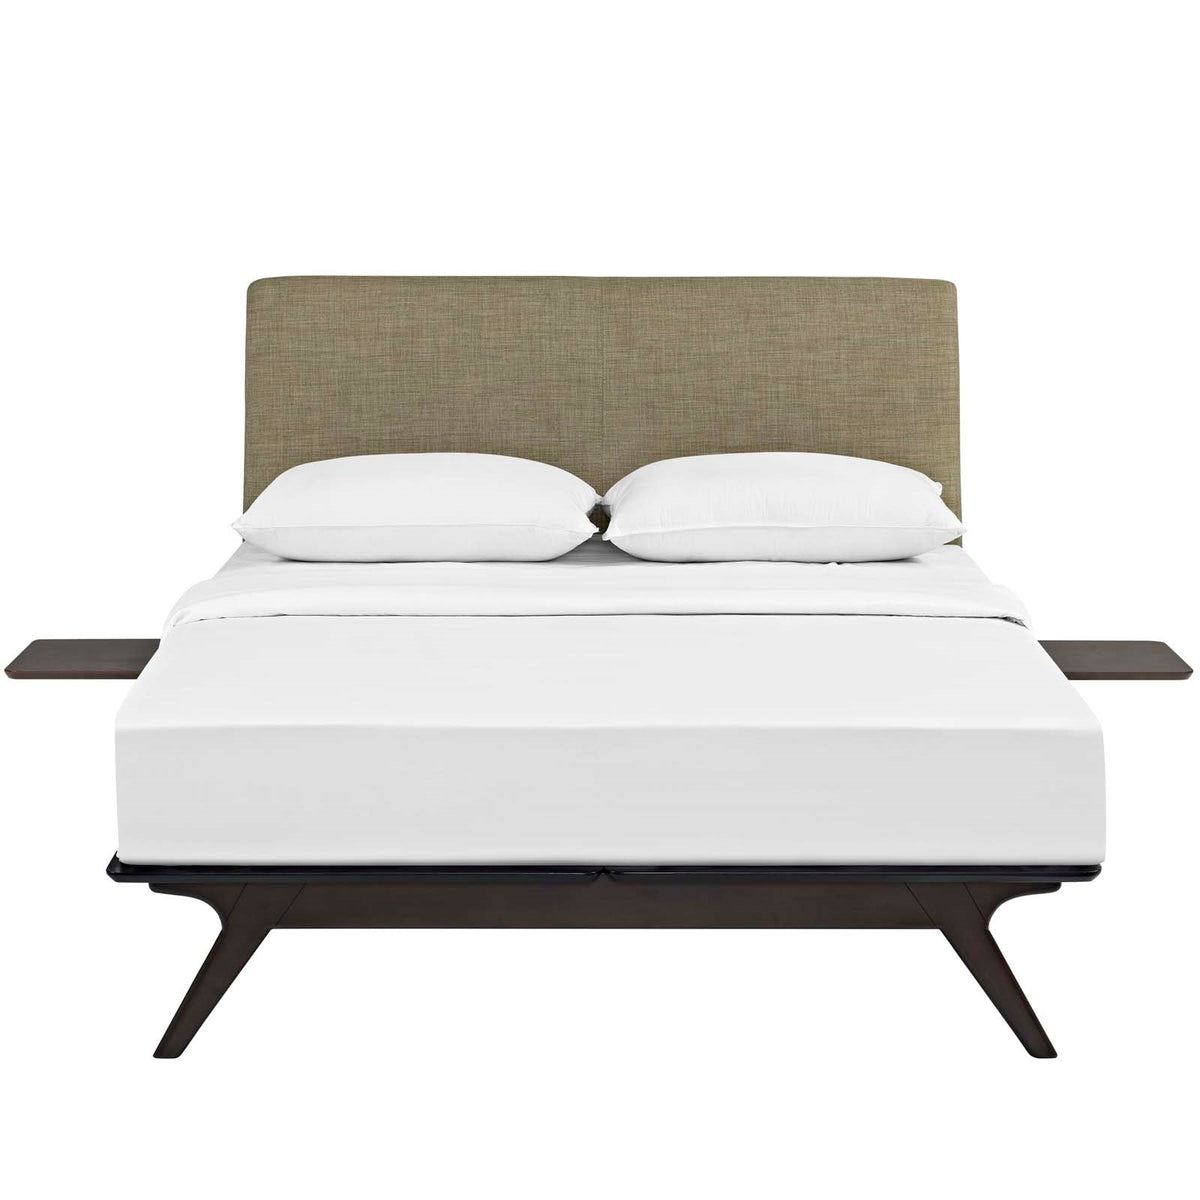 Lovo Queen Bed Set Capuccino Latte